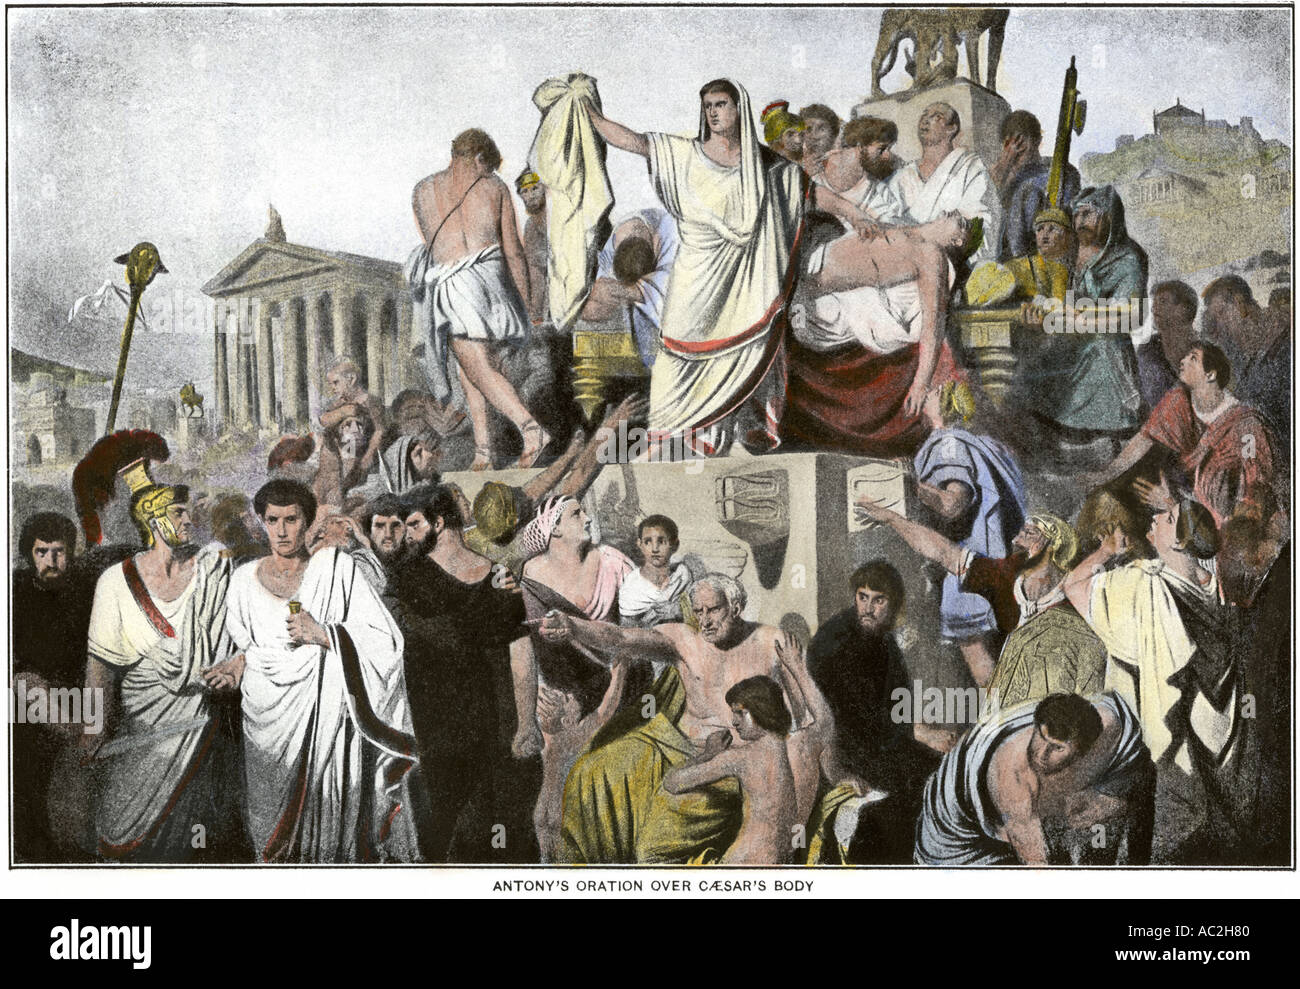 Marc Antony oration over the body of Julius Caesar ancient Rome. Hand-colored halftone of an illustration - Stock Image